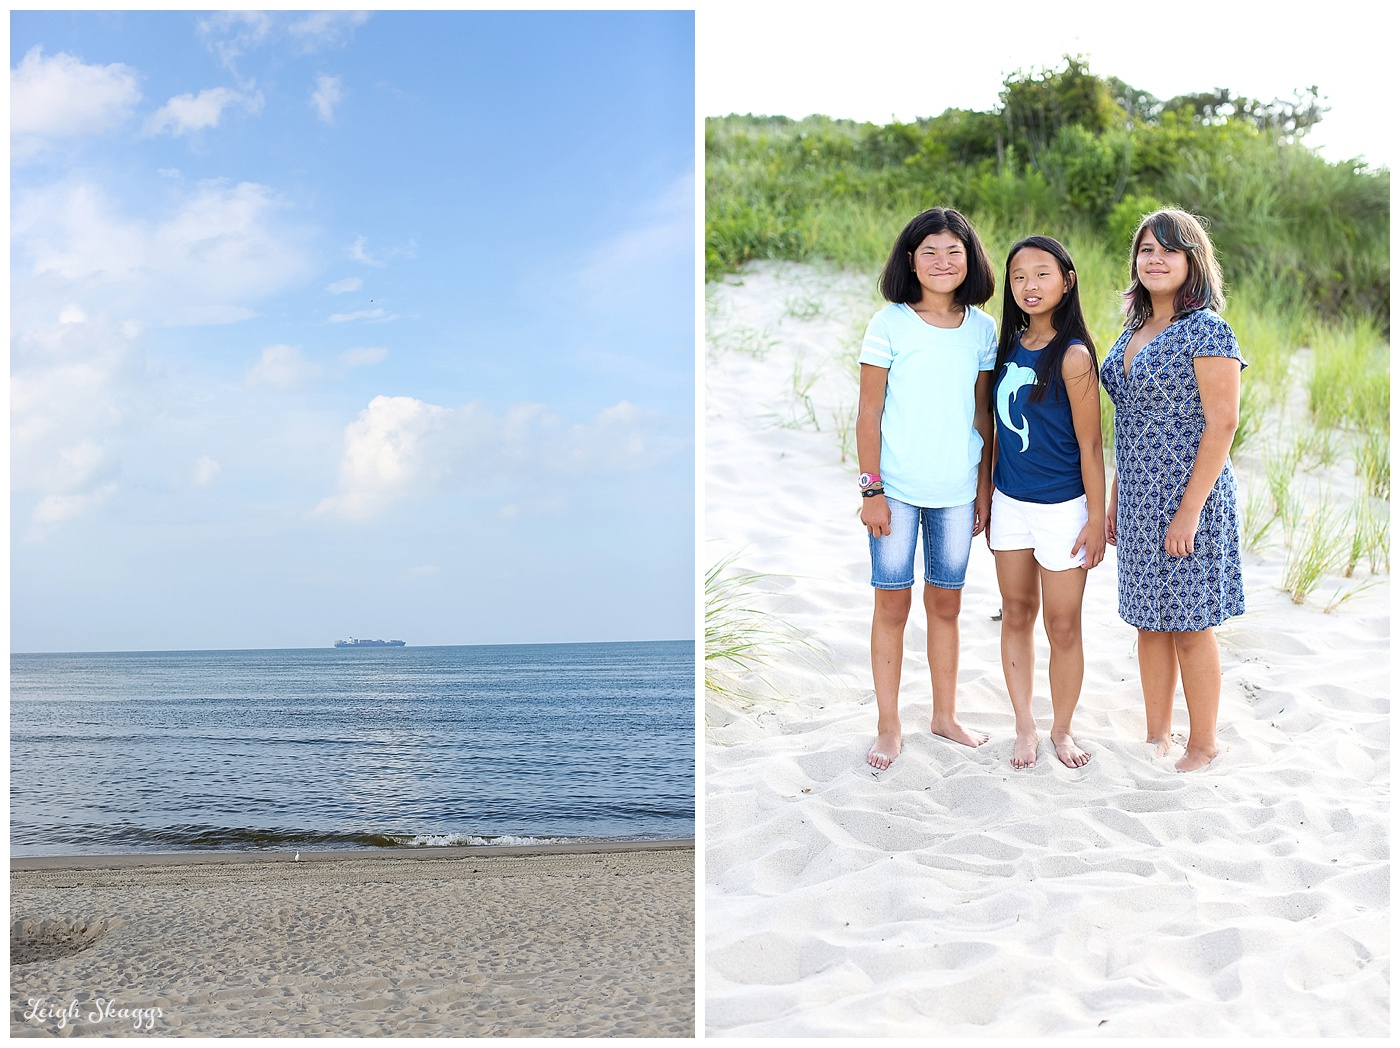 Fin and her Friends take on Ocean View Virginia!